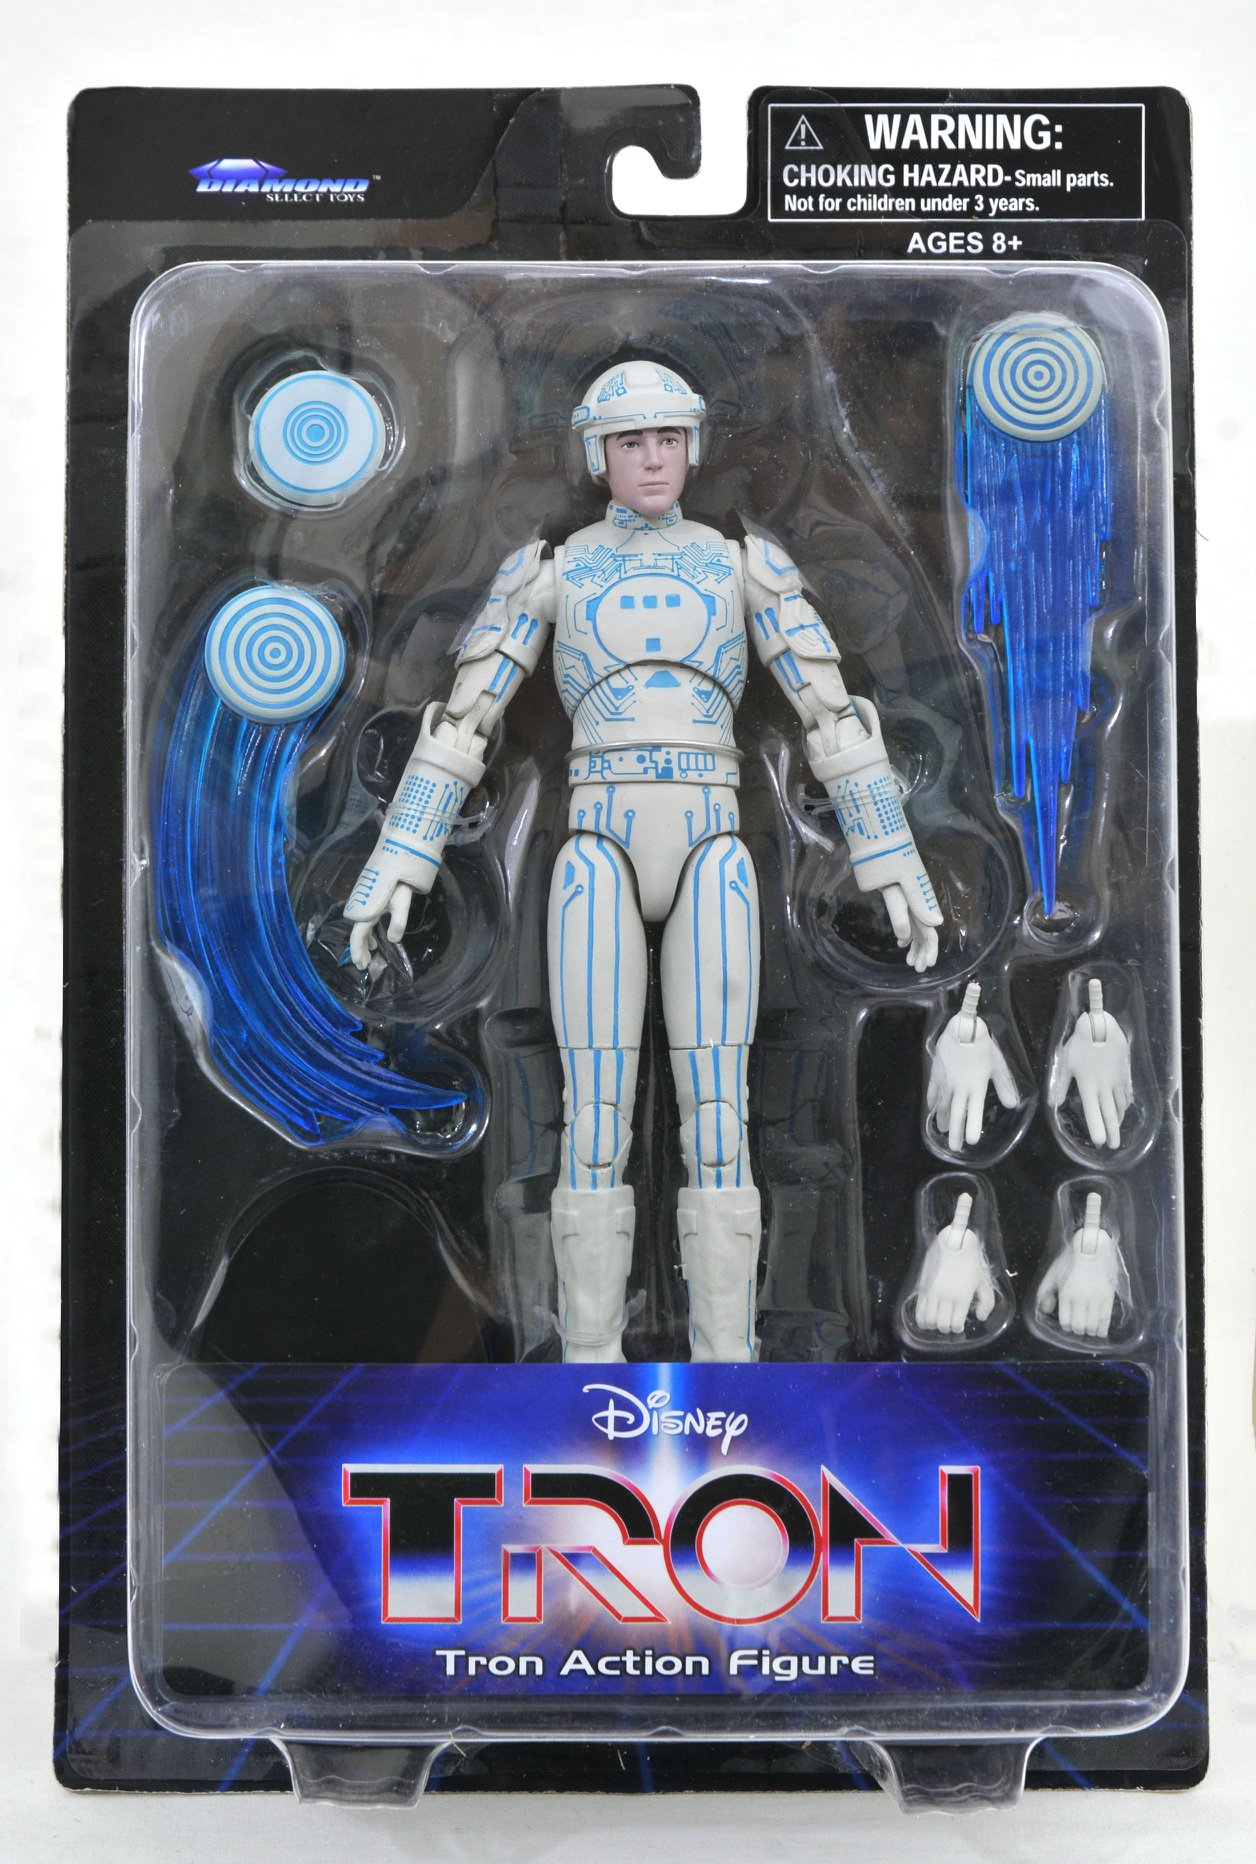 Tron Series 1 Packaging Tron